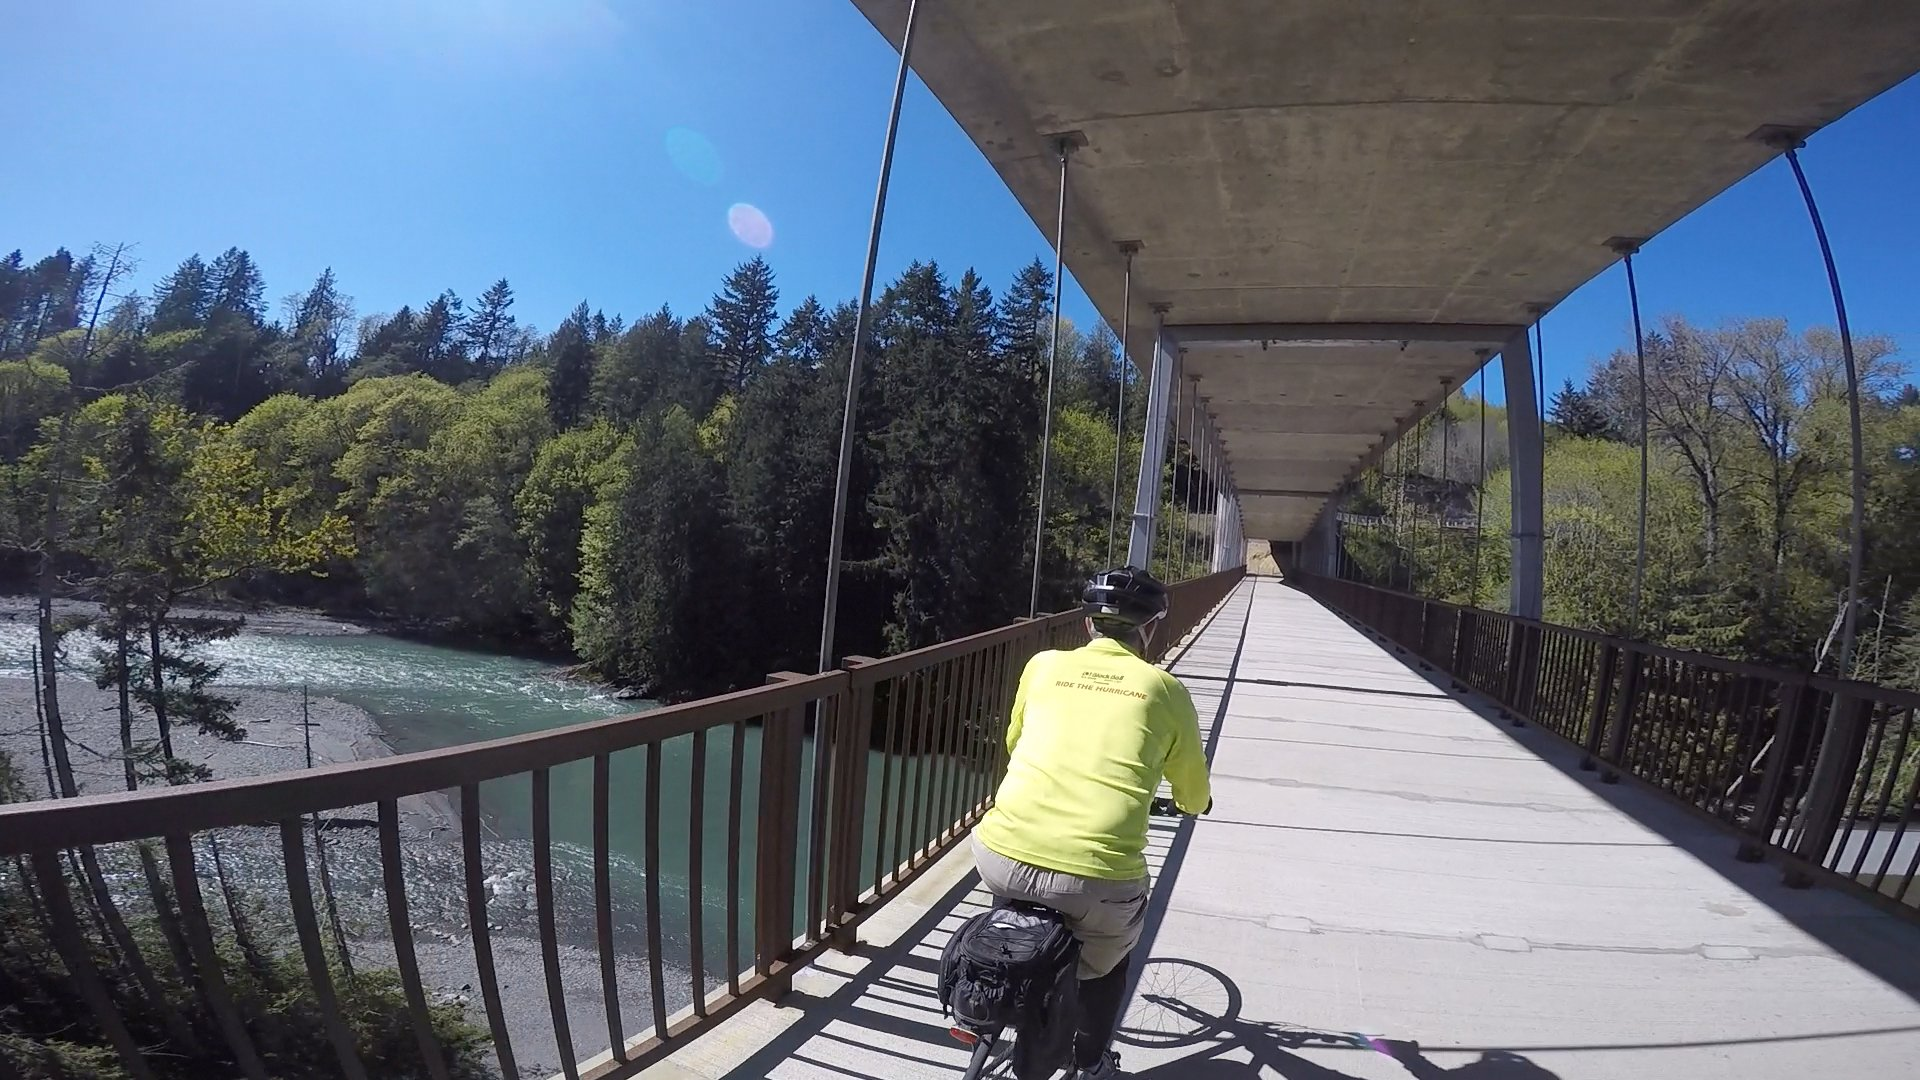 Olympic cycle port orchard - Odt Crossing Elwha River